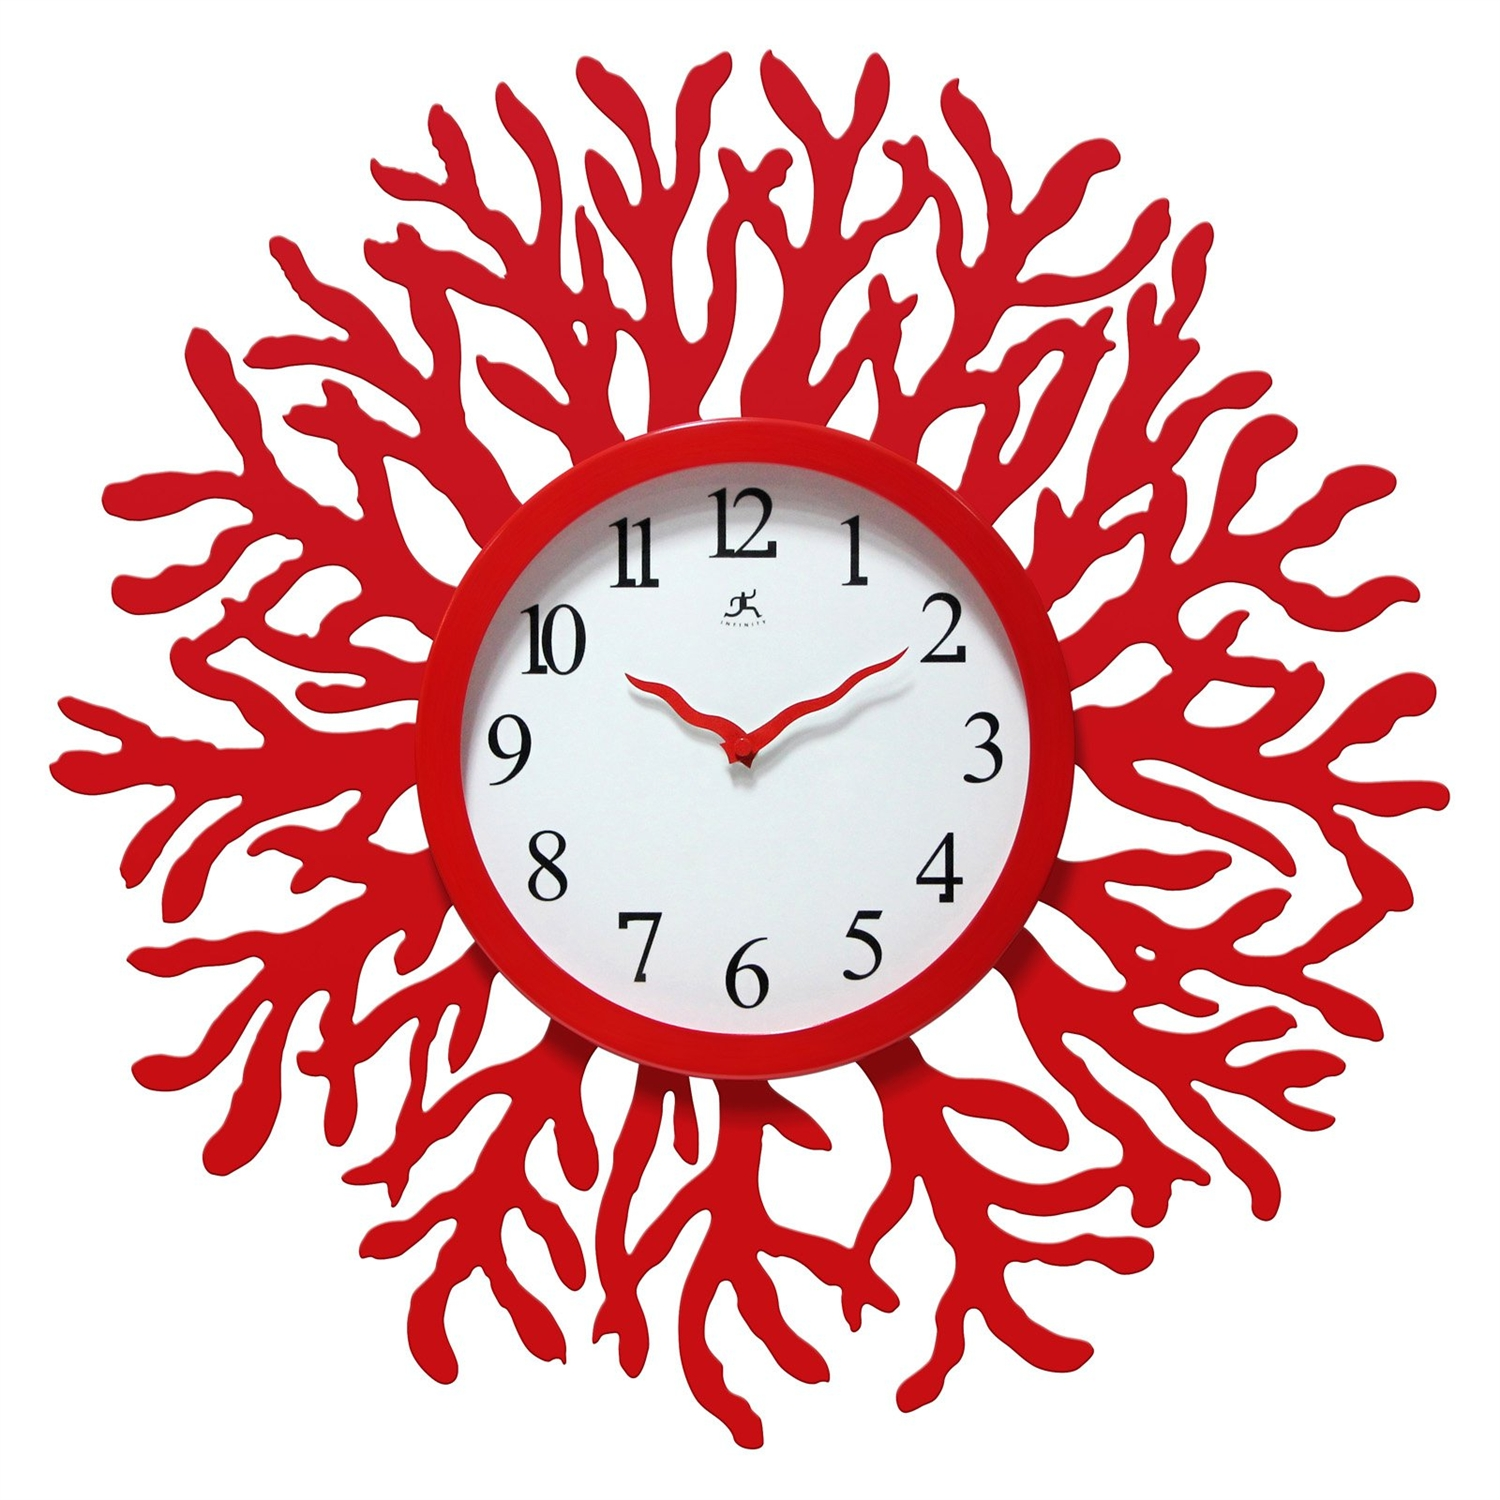 Red coral reef modern wall clock ocean beach theme 22 inch red coral reef modern wall clock ocean beach theme 22 inch diameter amipublicfo Images